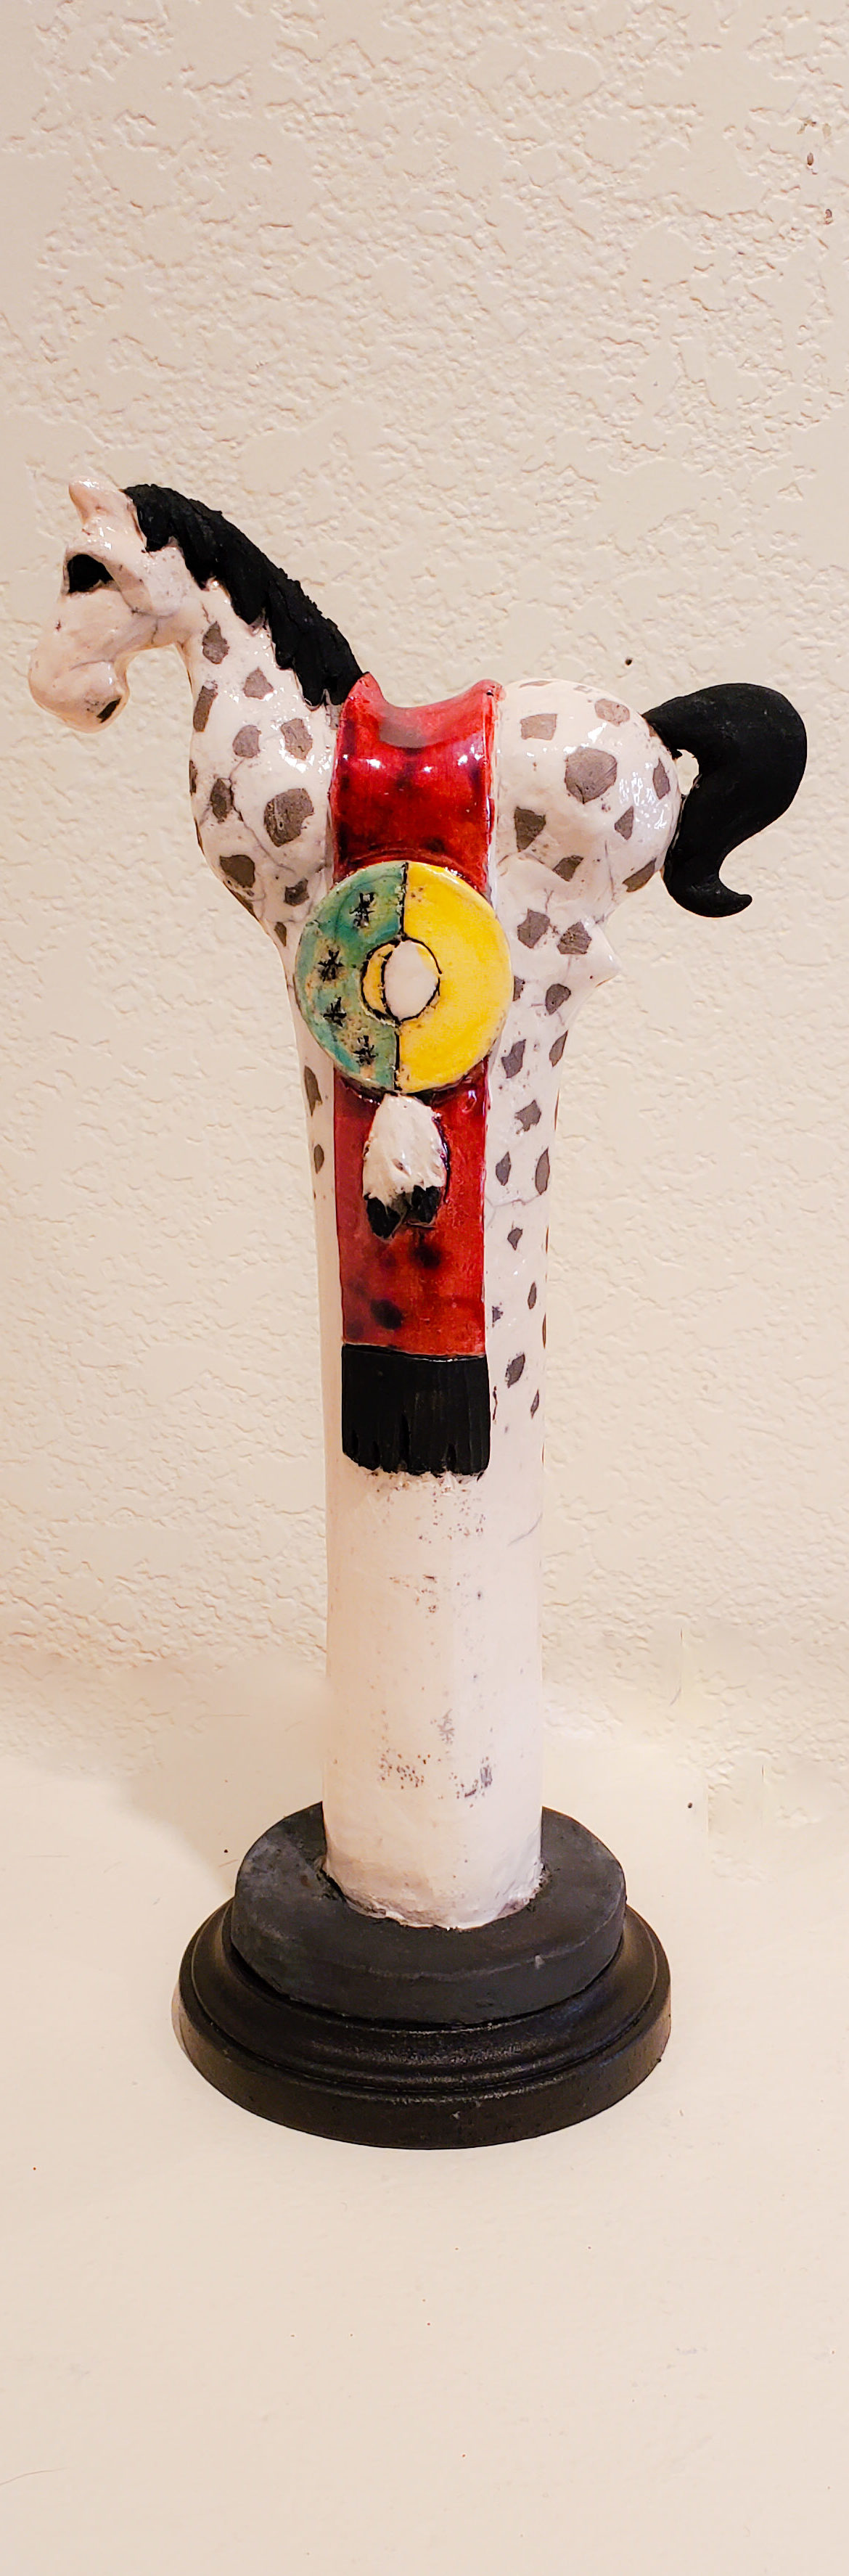 Painted Pony #11, John Booth, Ceramic Sculpture, Rogoway Gallery